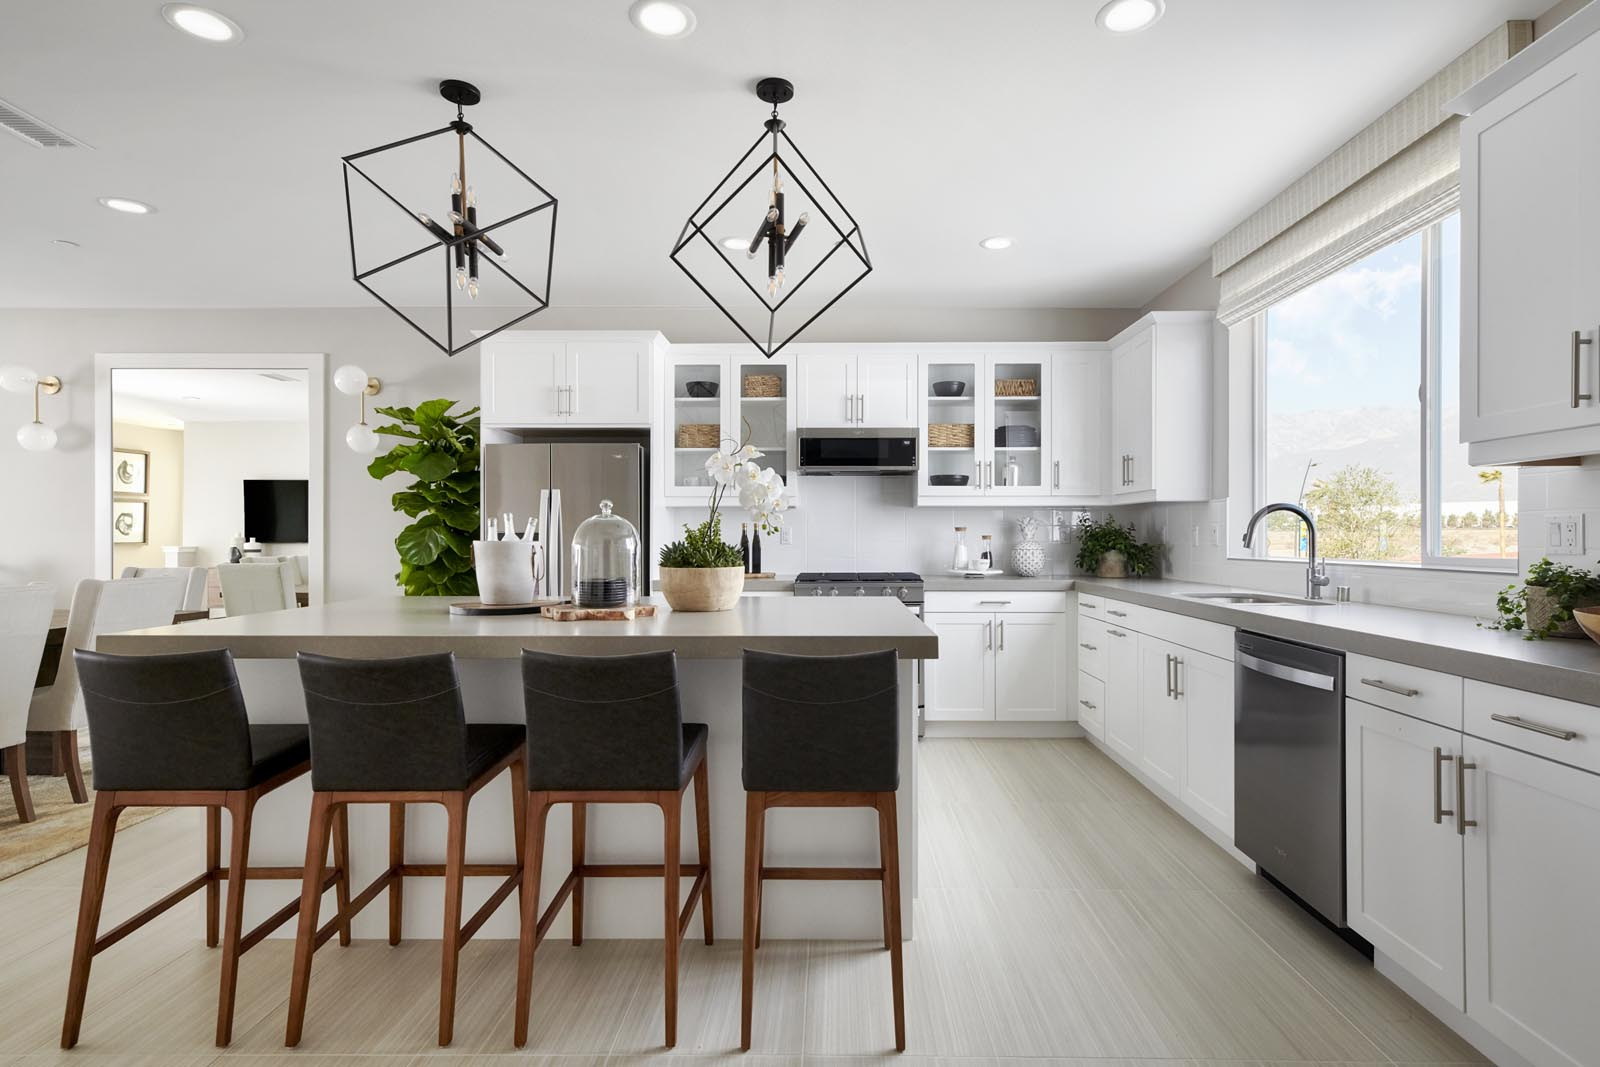 Kitchen | Residence 3 | Tempo | New Homes in Rancho Cucamonga, CA | Tri Pointe Homes